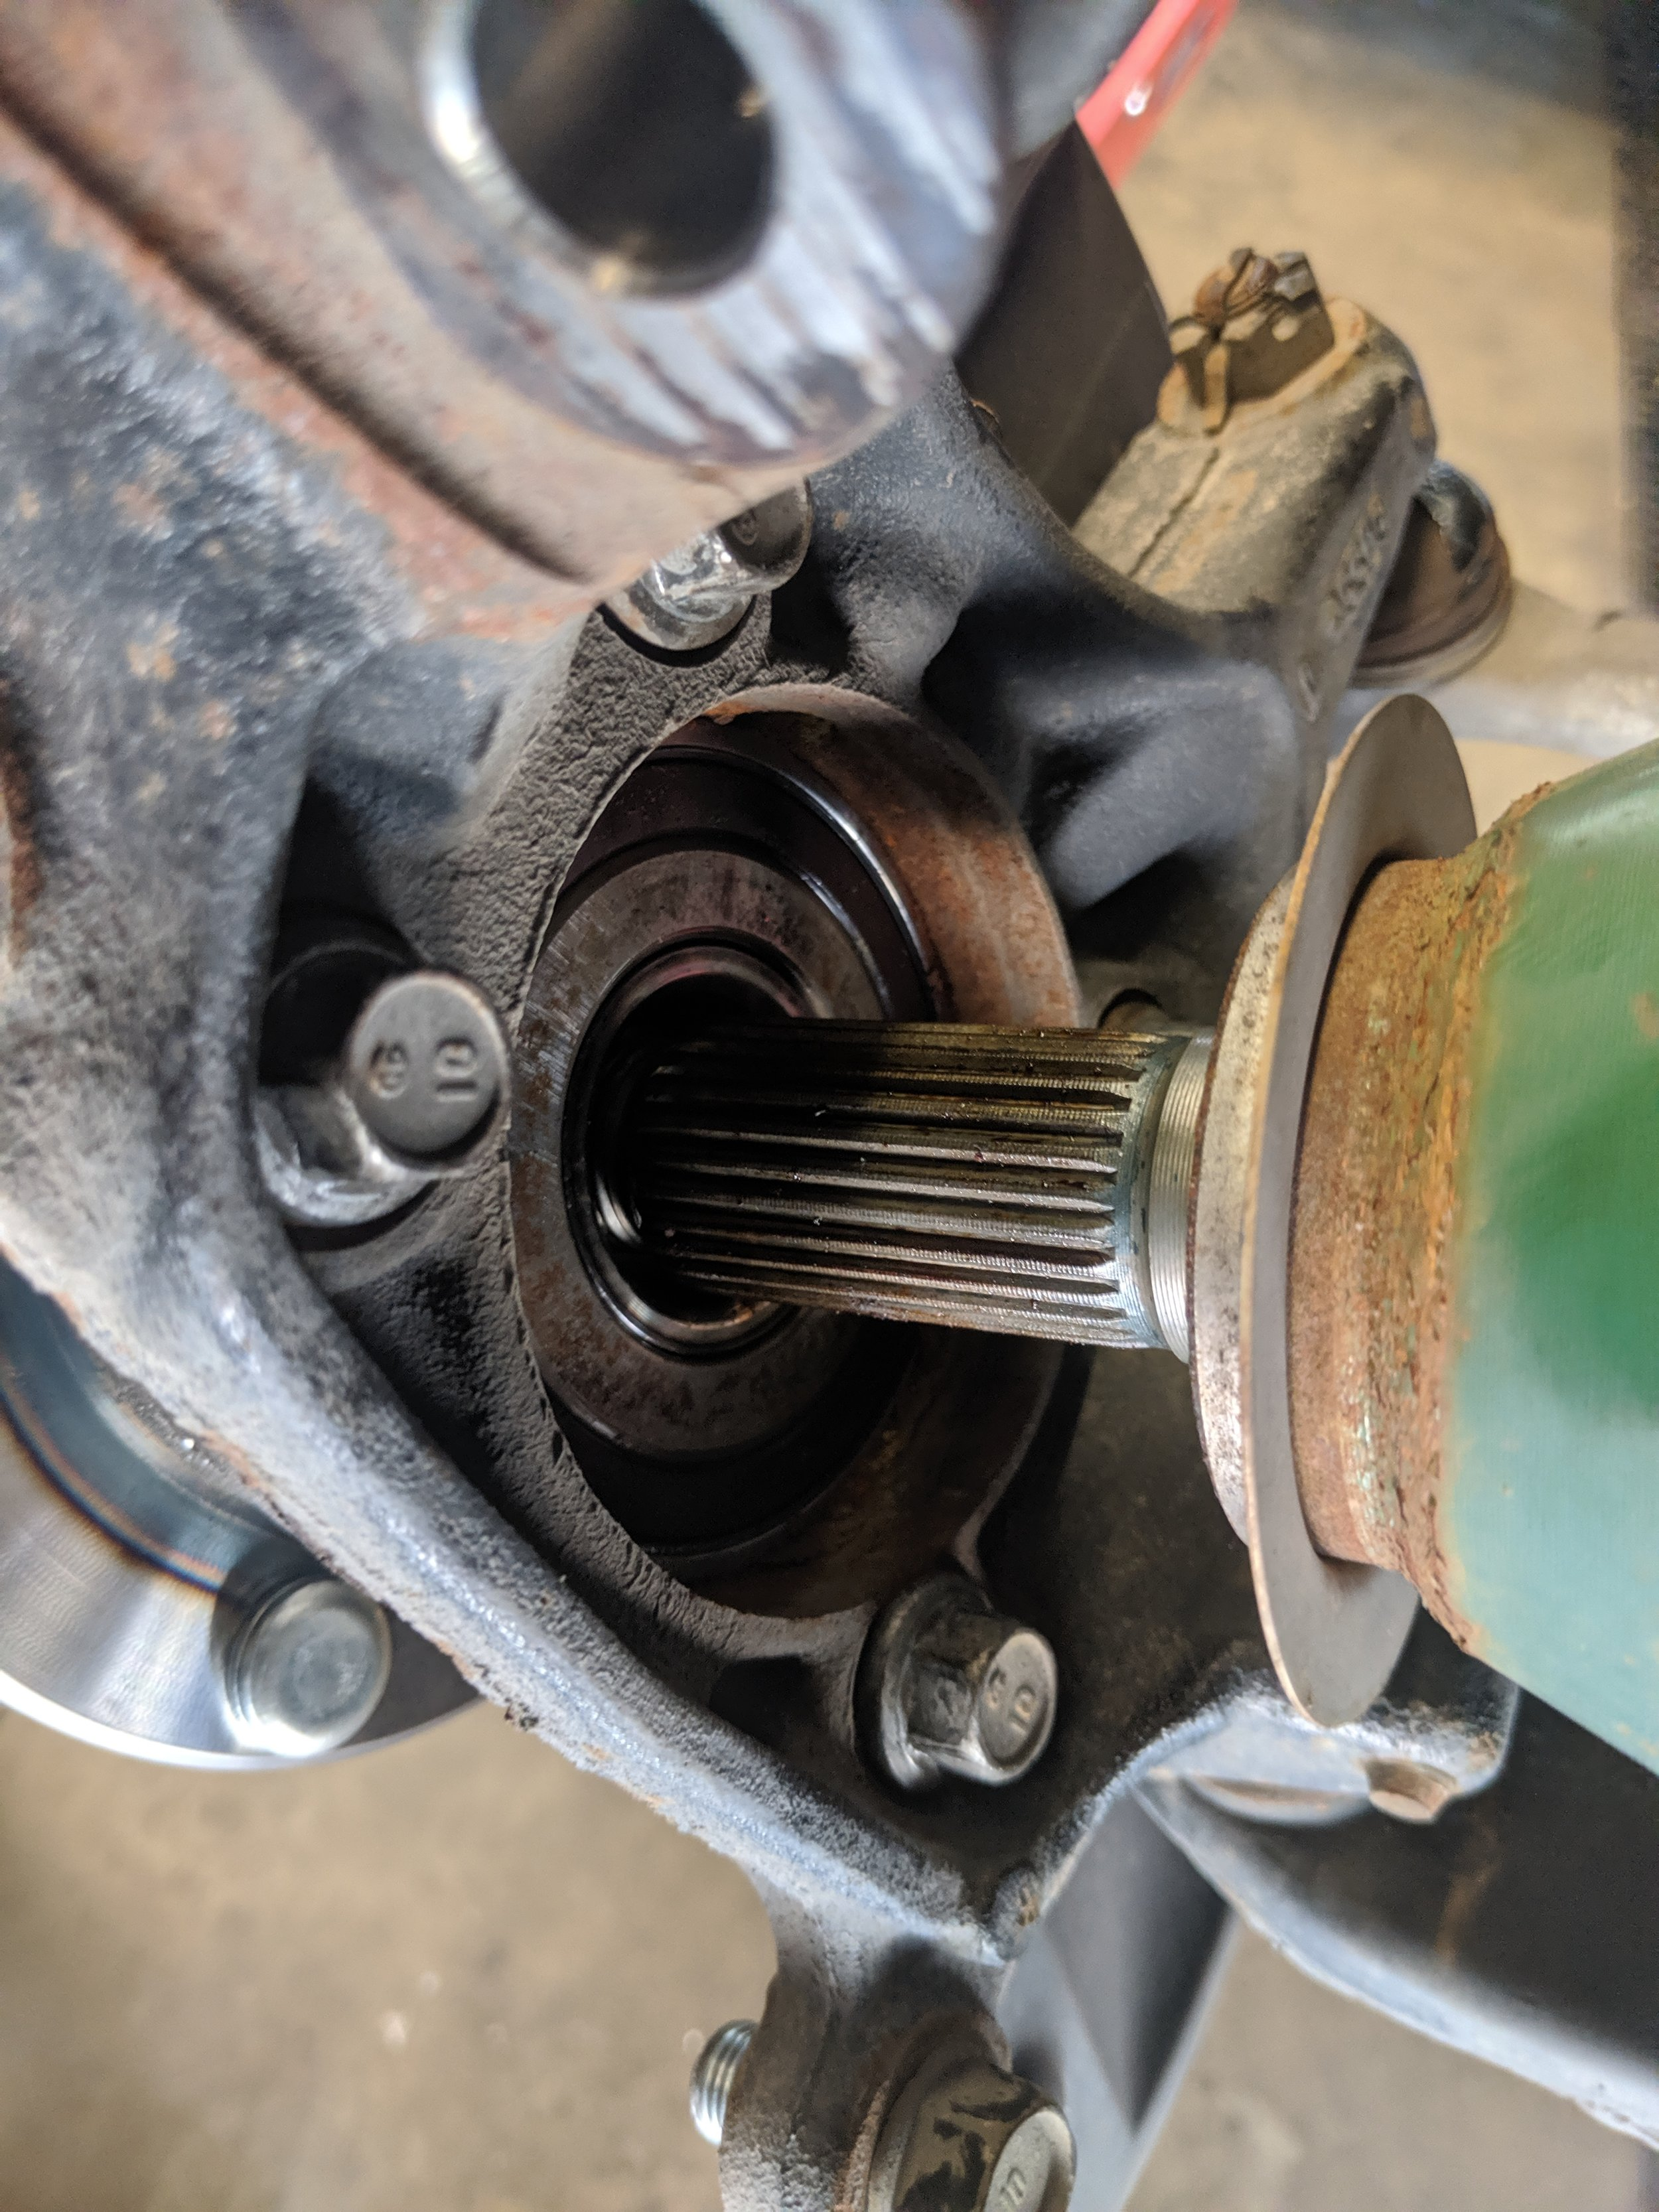 With a bit of force and skill you can now slide the CV axle out or just push it out of your way to get to those bolts.